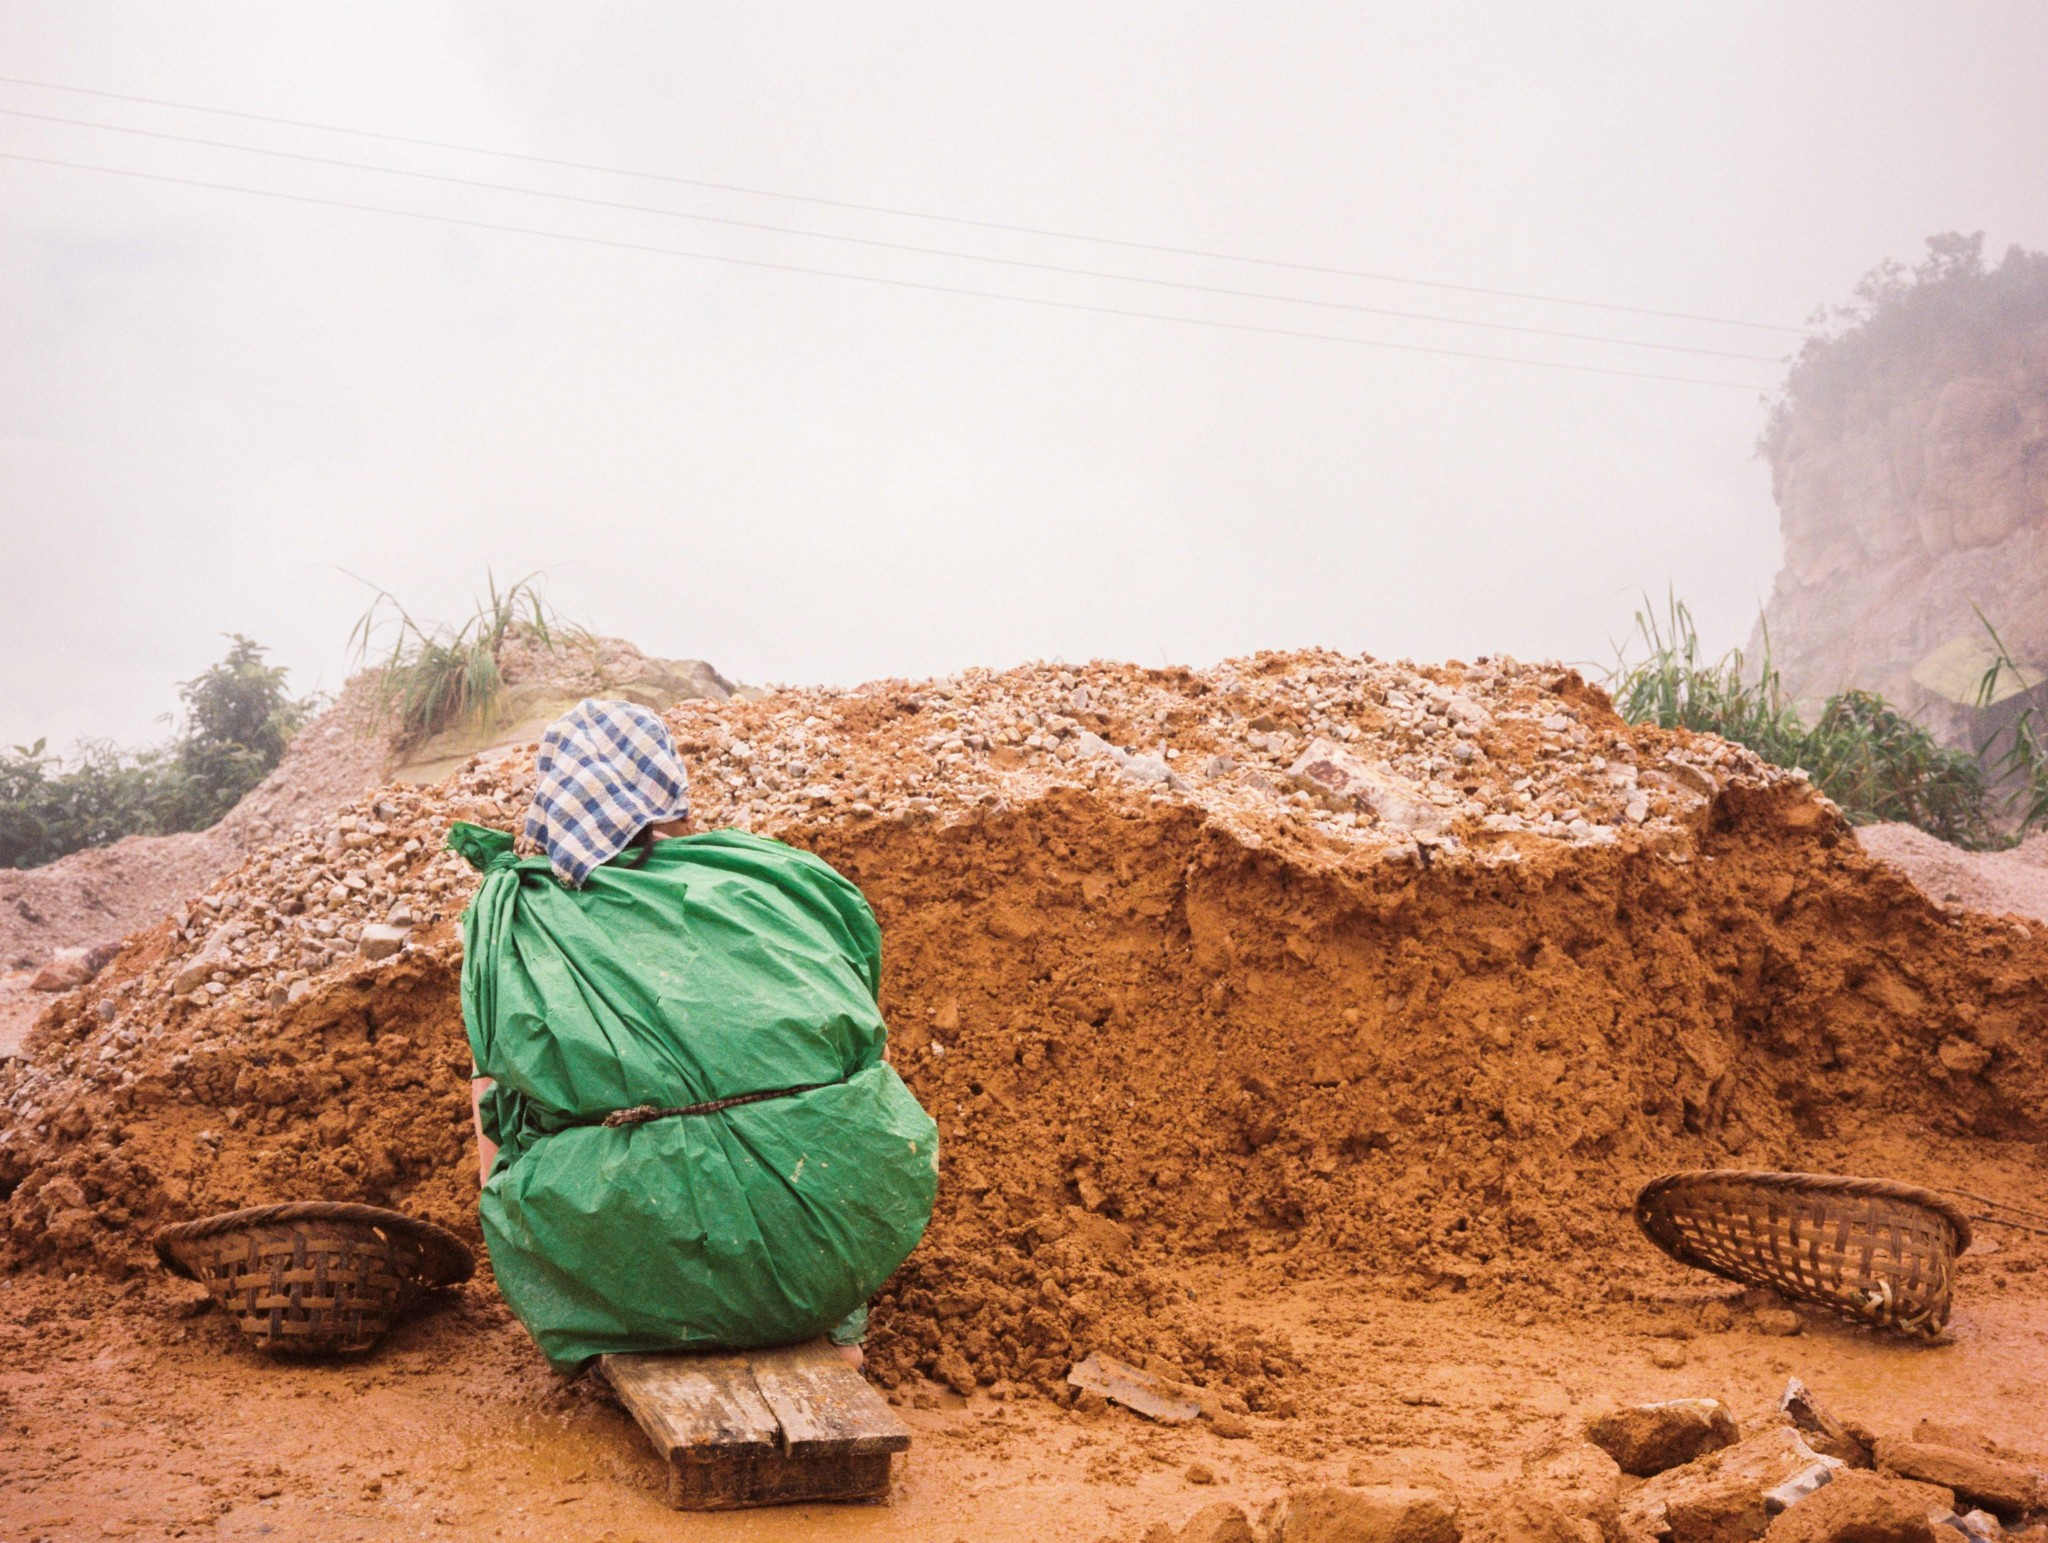 Due to the oppressive poverty of the region, the Khasi are employed to break rock by hand for shipment to Bangladesh.